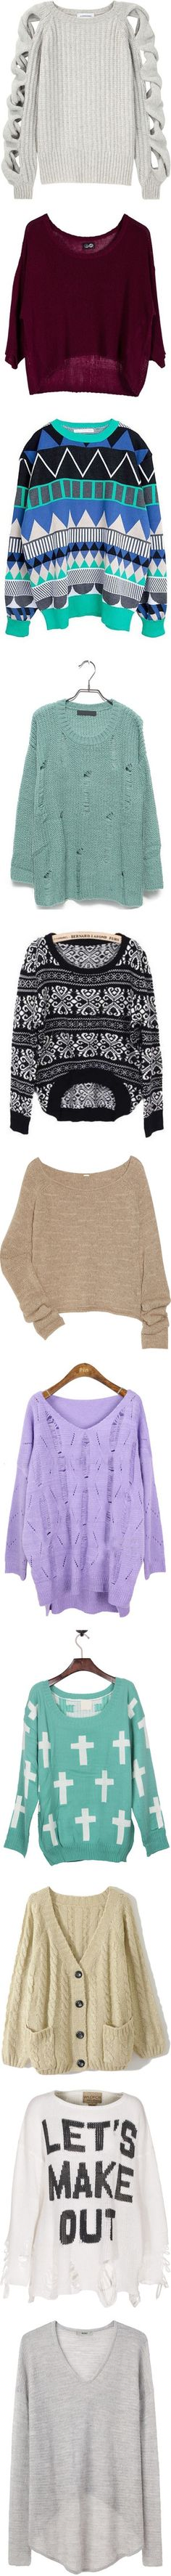 """Sweaters and Cardigans"" by belieberrrrrrrrrrrrrr ❤ liked on Polyvore"